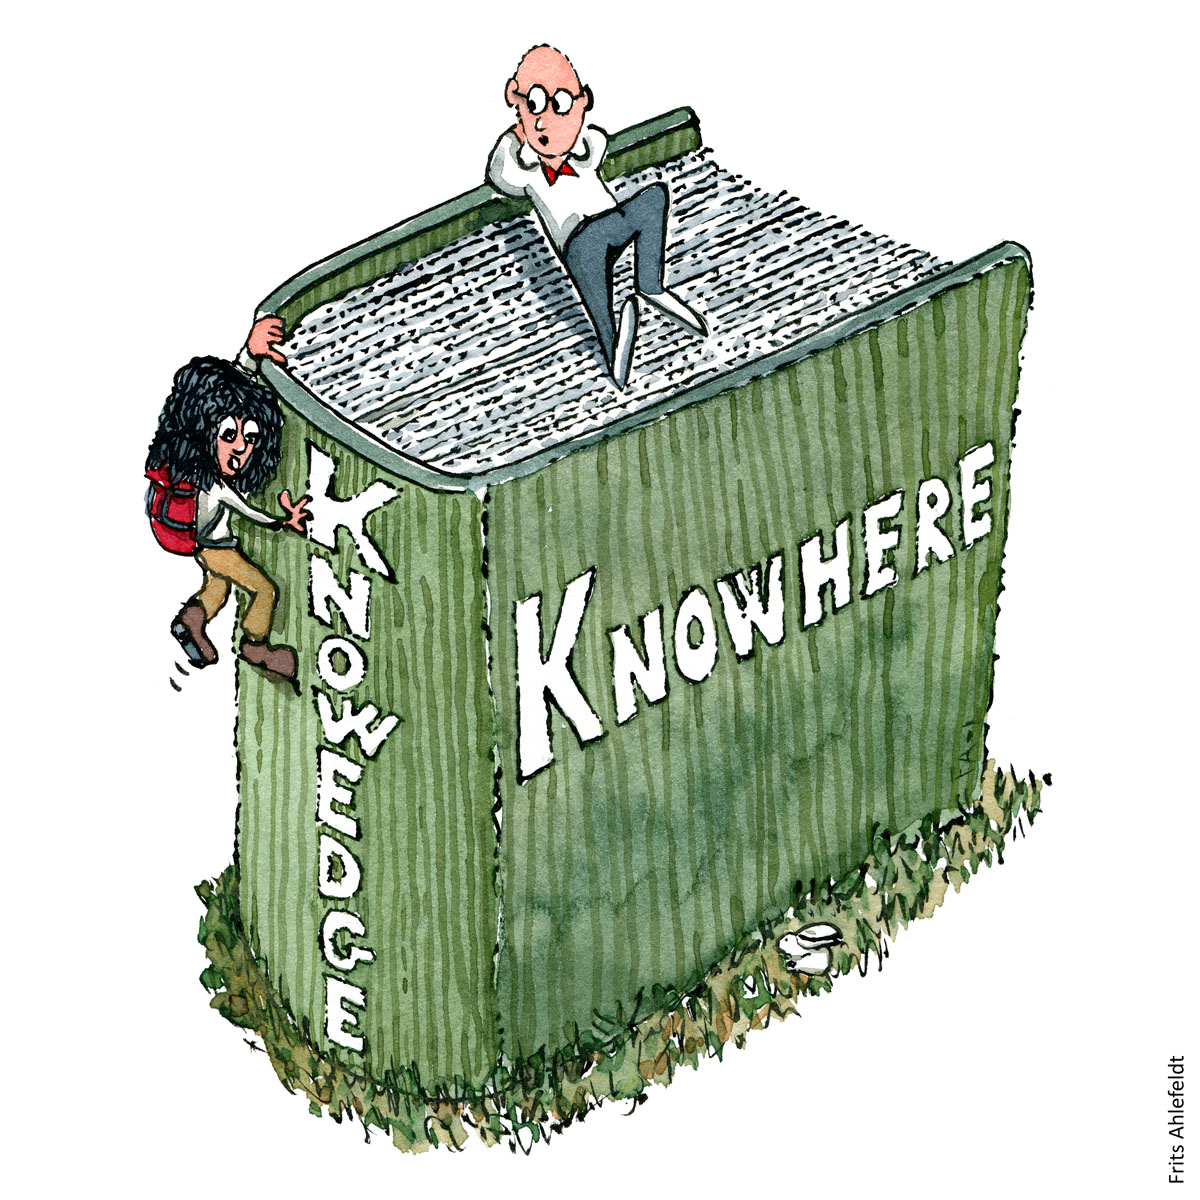 Drawing of a man sitting on a book with title Knowhere. Woman climbing side with text Knowedge. Hiking illustration and idea by Frits Ahlefeldt